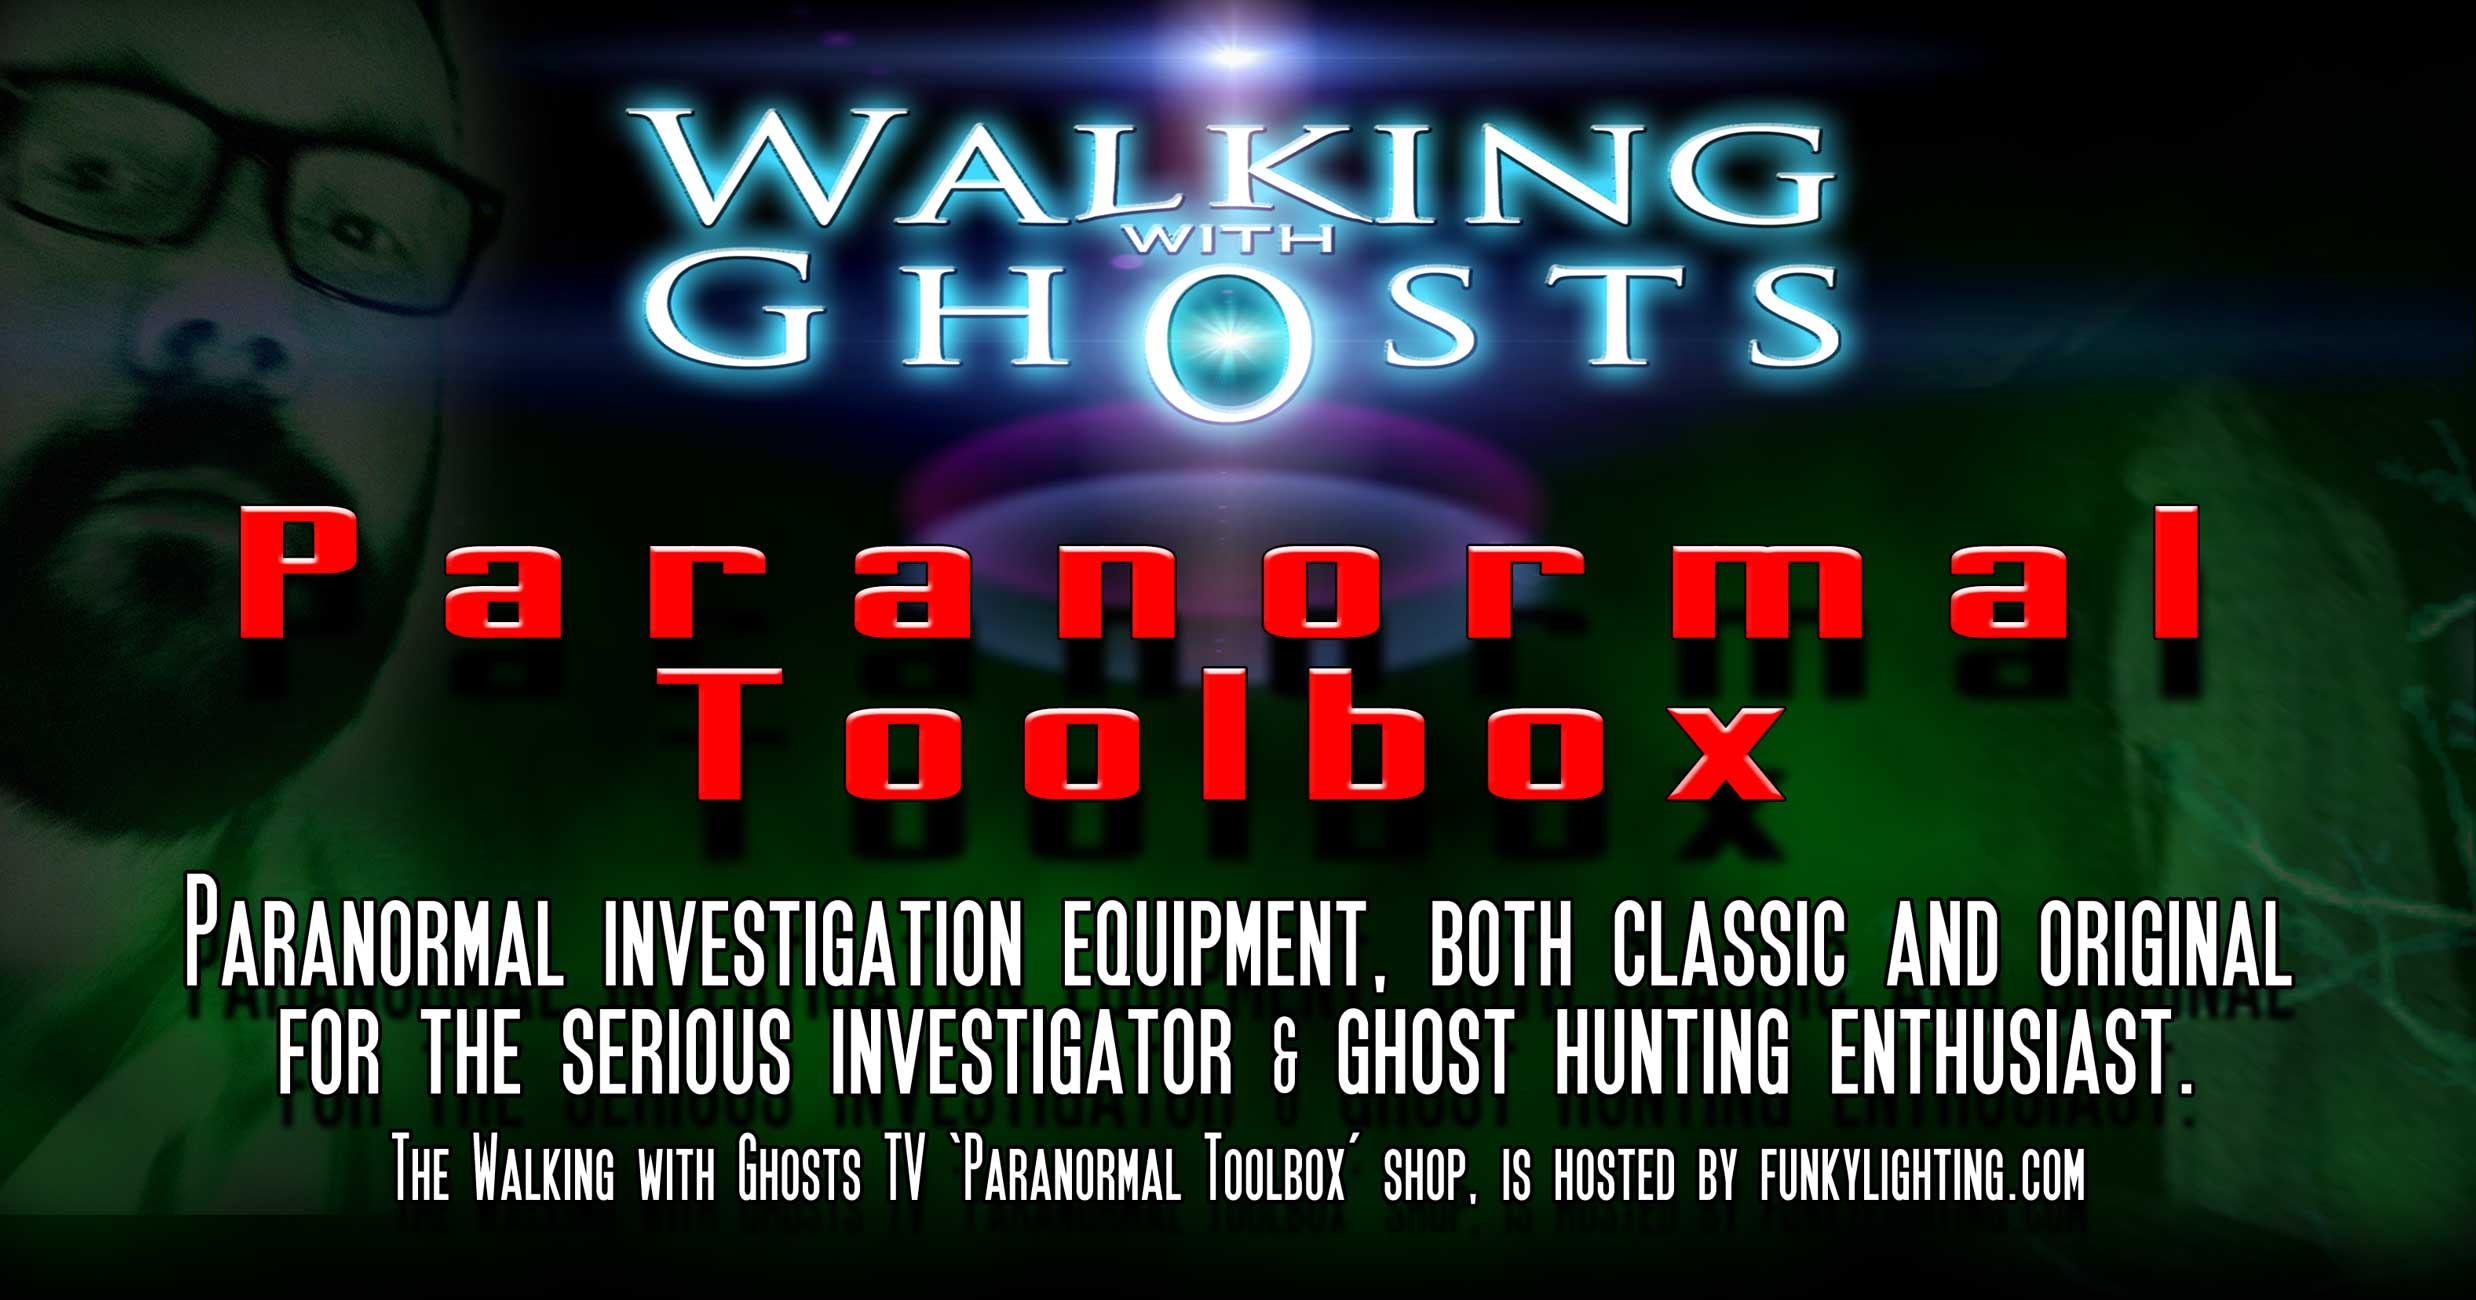 Walking with Ghosts Paranormal Equipment